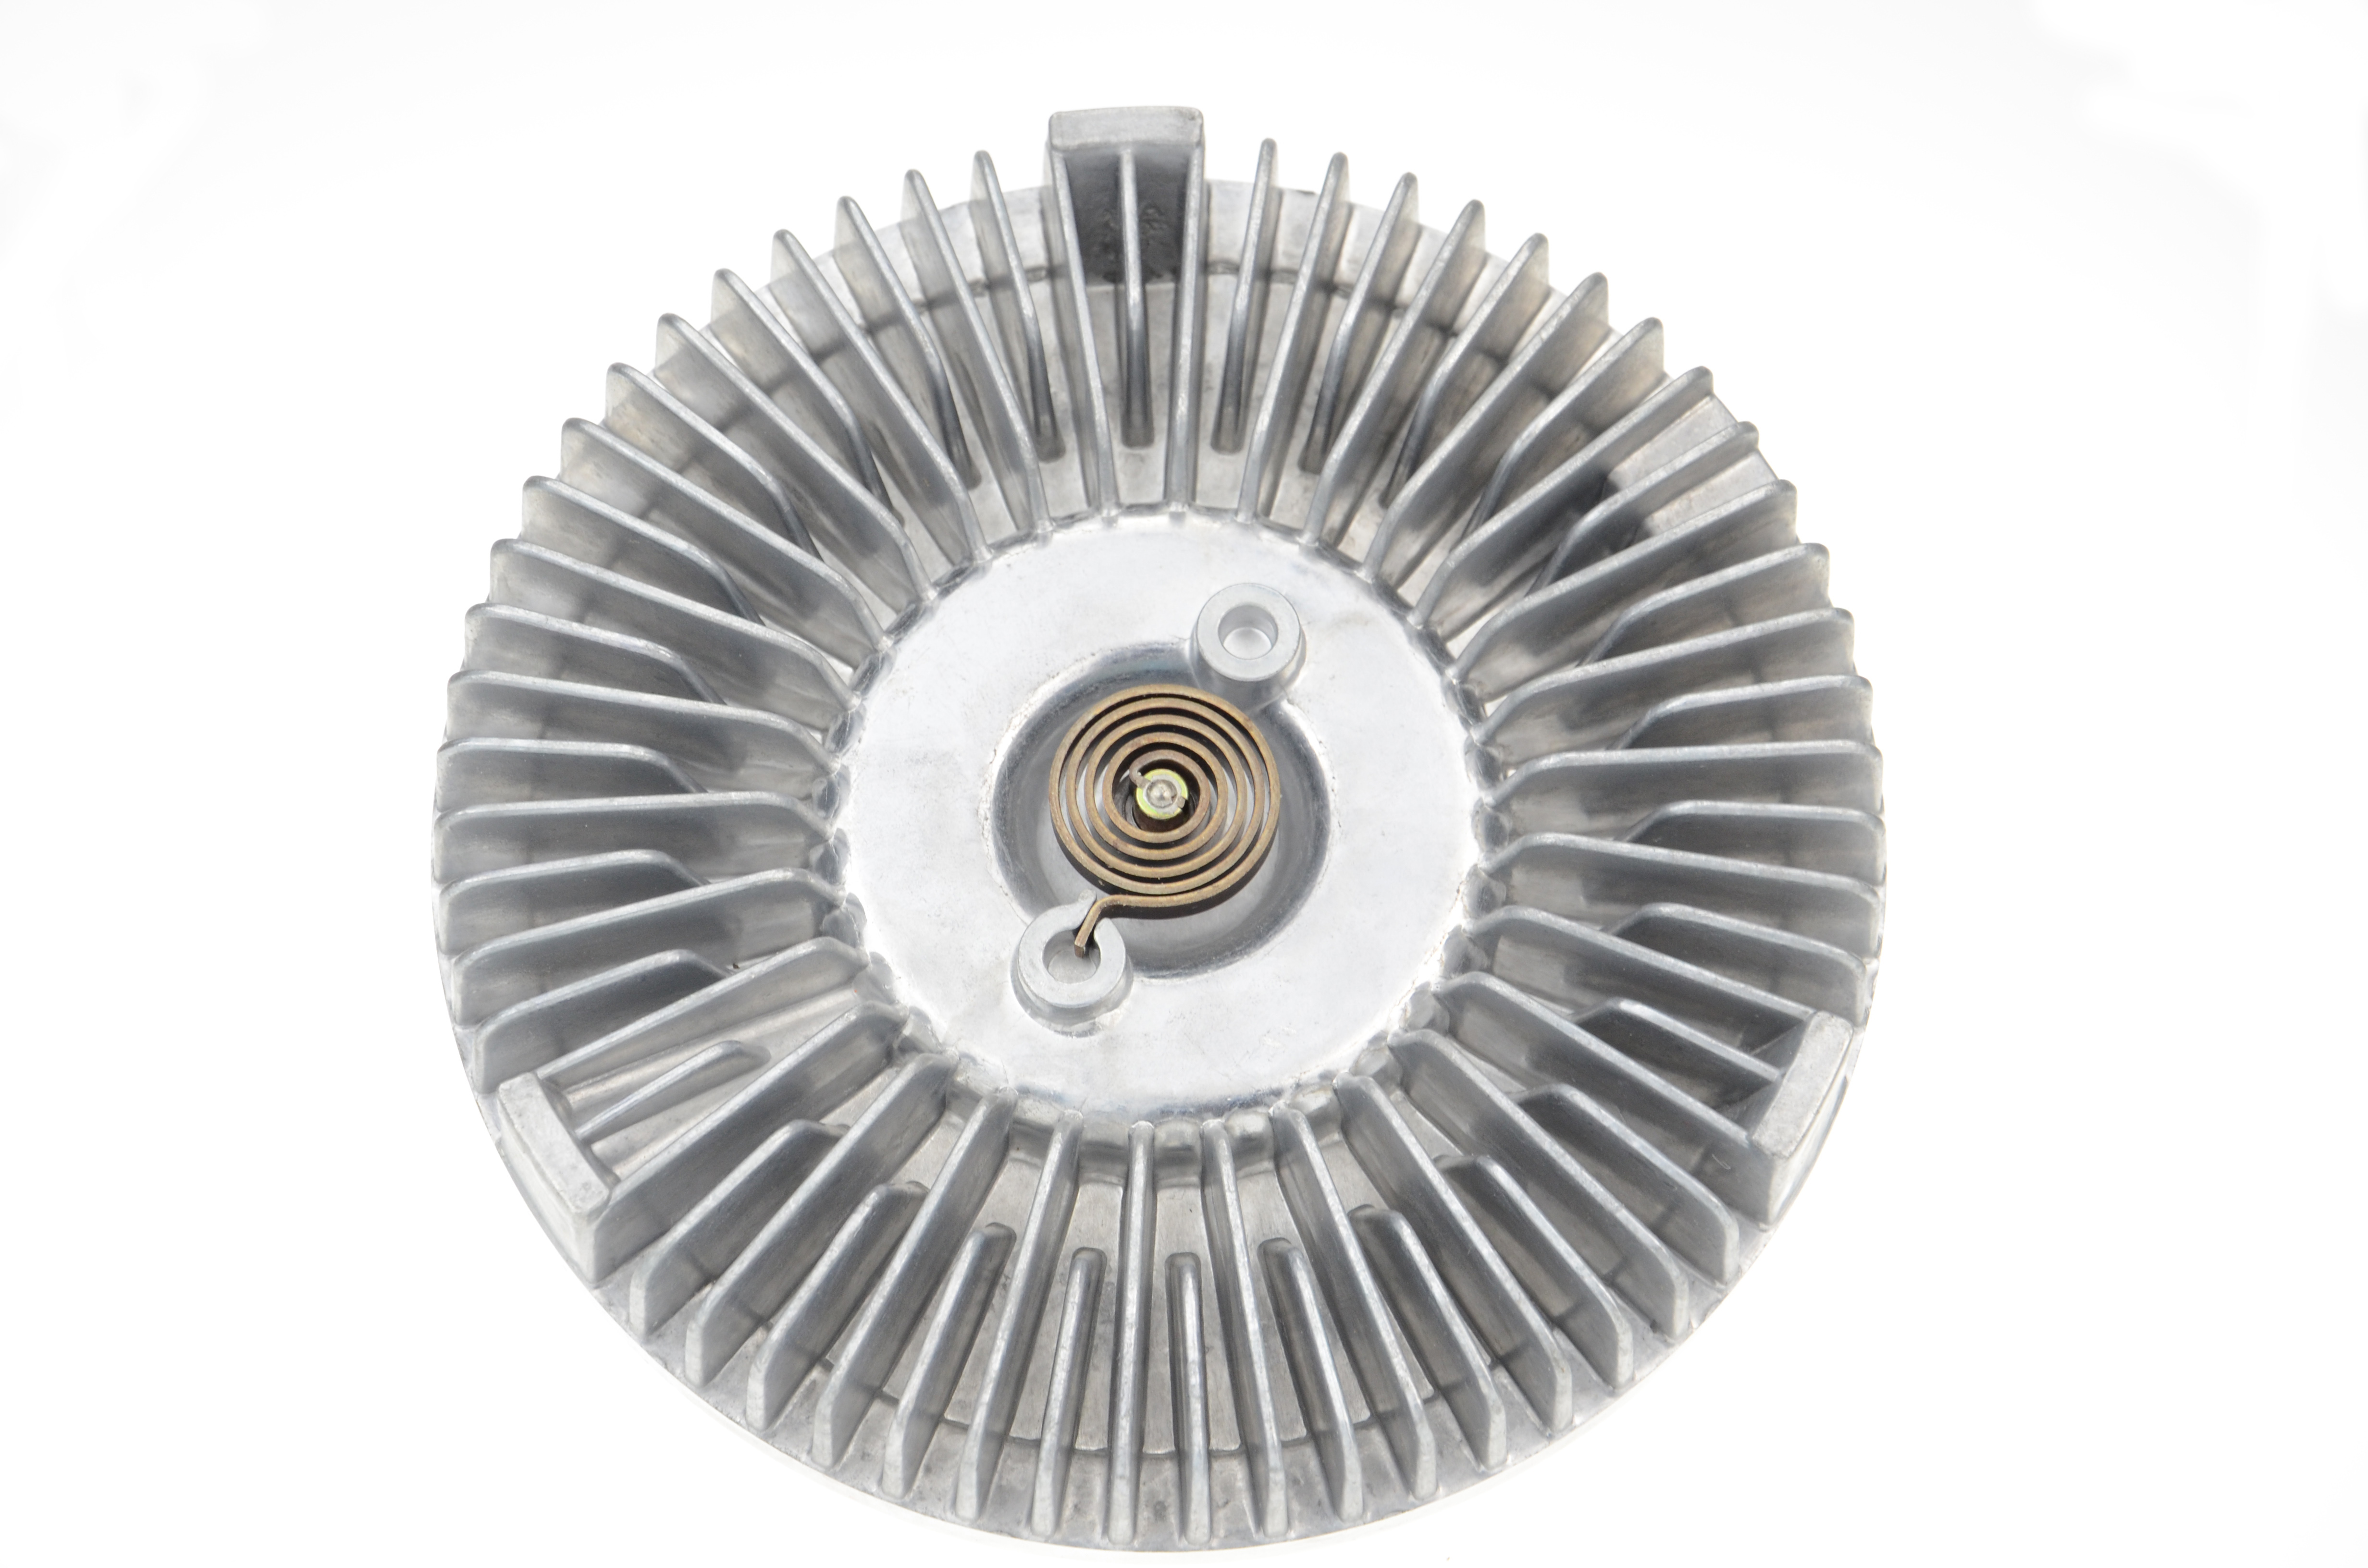 medium resolution of engine cooling fan clutch fit jeep grand cherokee zj 93 98 i6 4 0l ohv 52027823 one year quality warranty 30 days free return in fans kits from